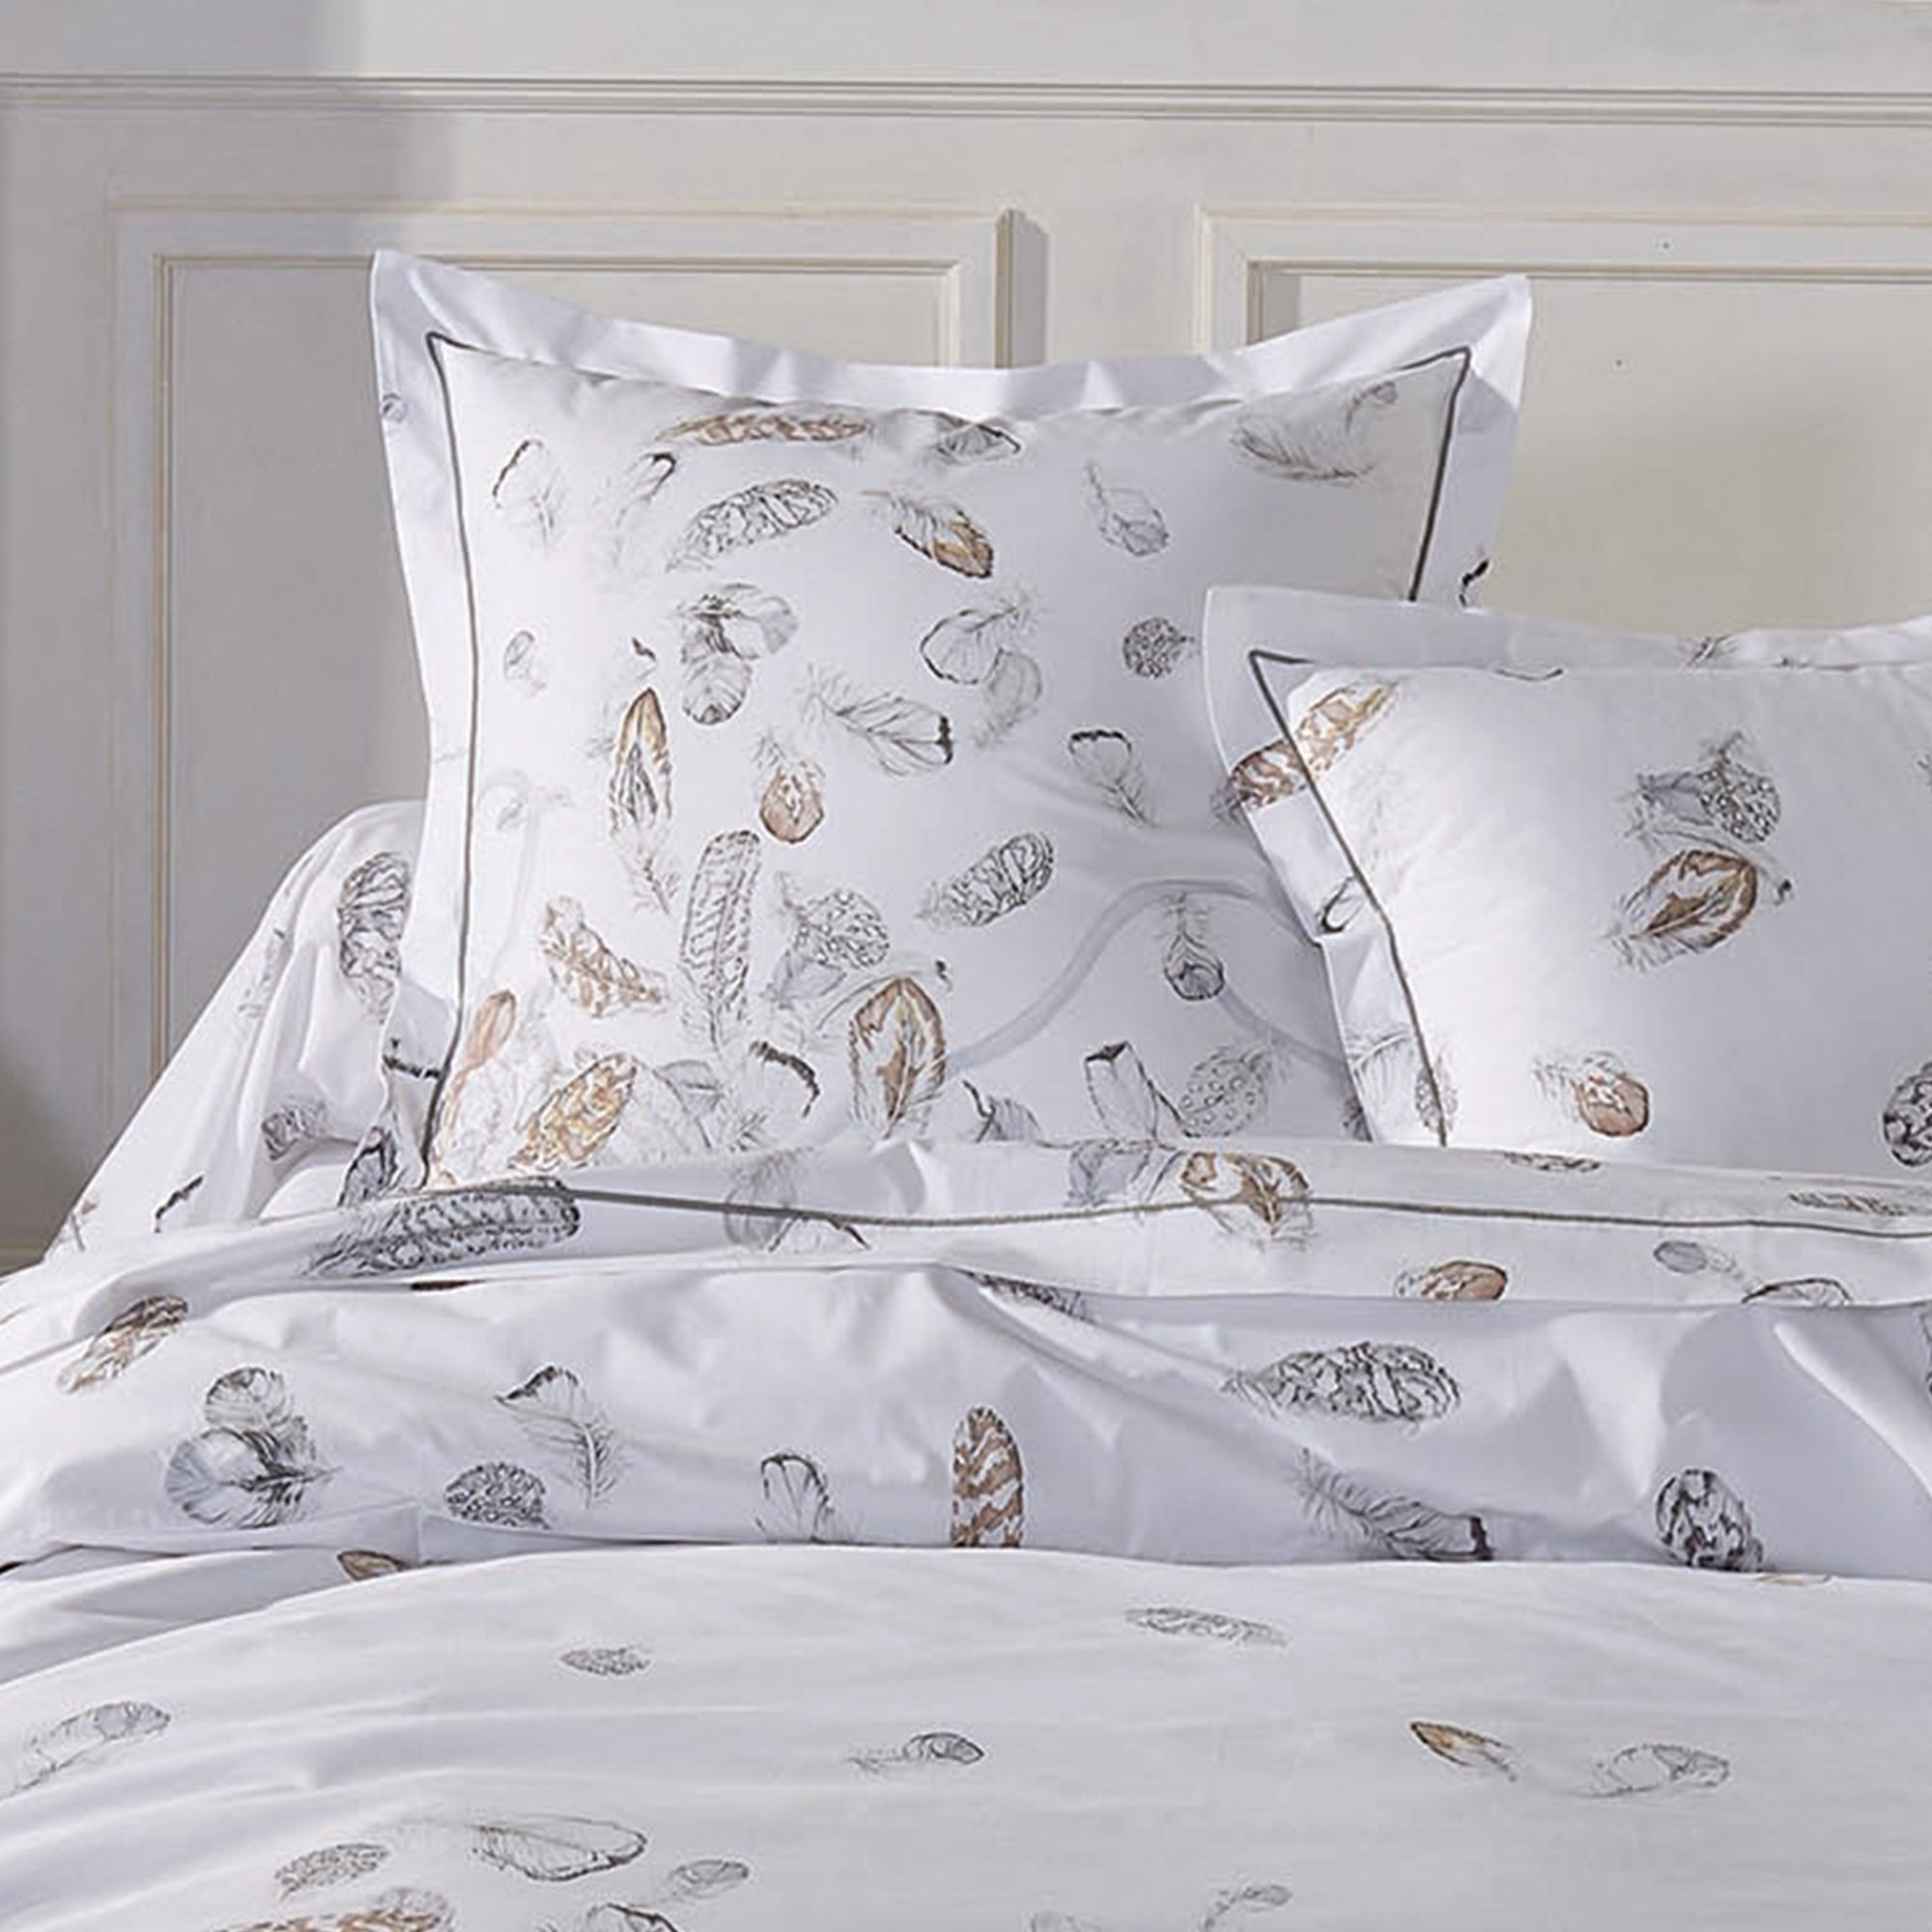 parure de lit percale pur coton peign 300x240 cm plumes. Black Bedroom Furniture Sets. Home Design Ideas